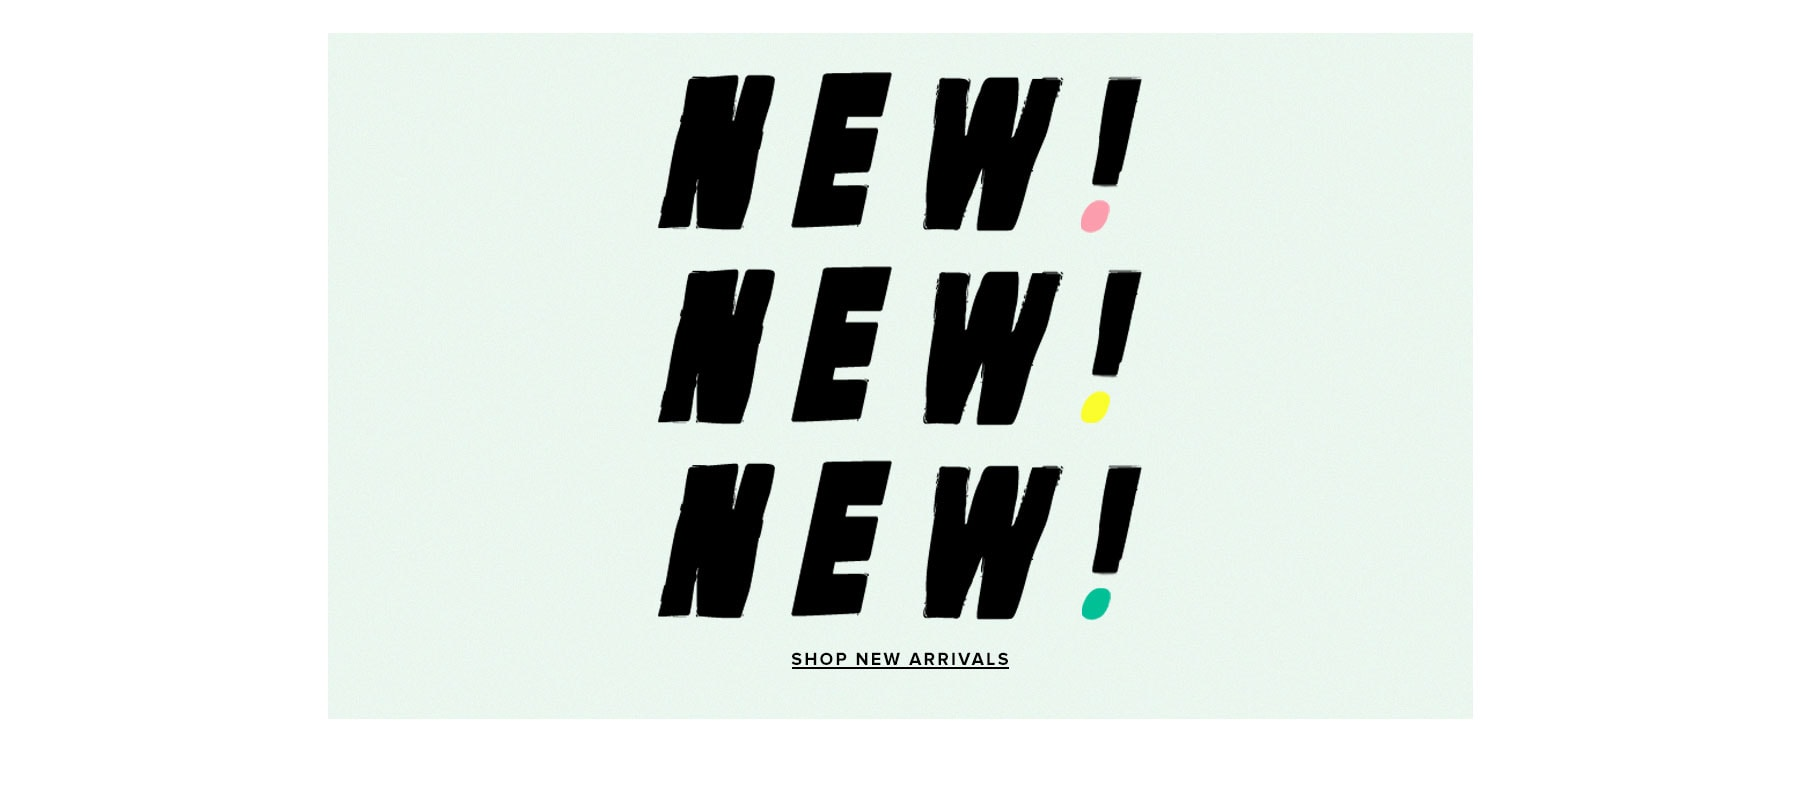 NEW! NEW! NEW! Shop new arrivals.